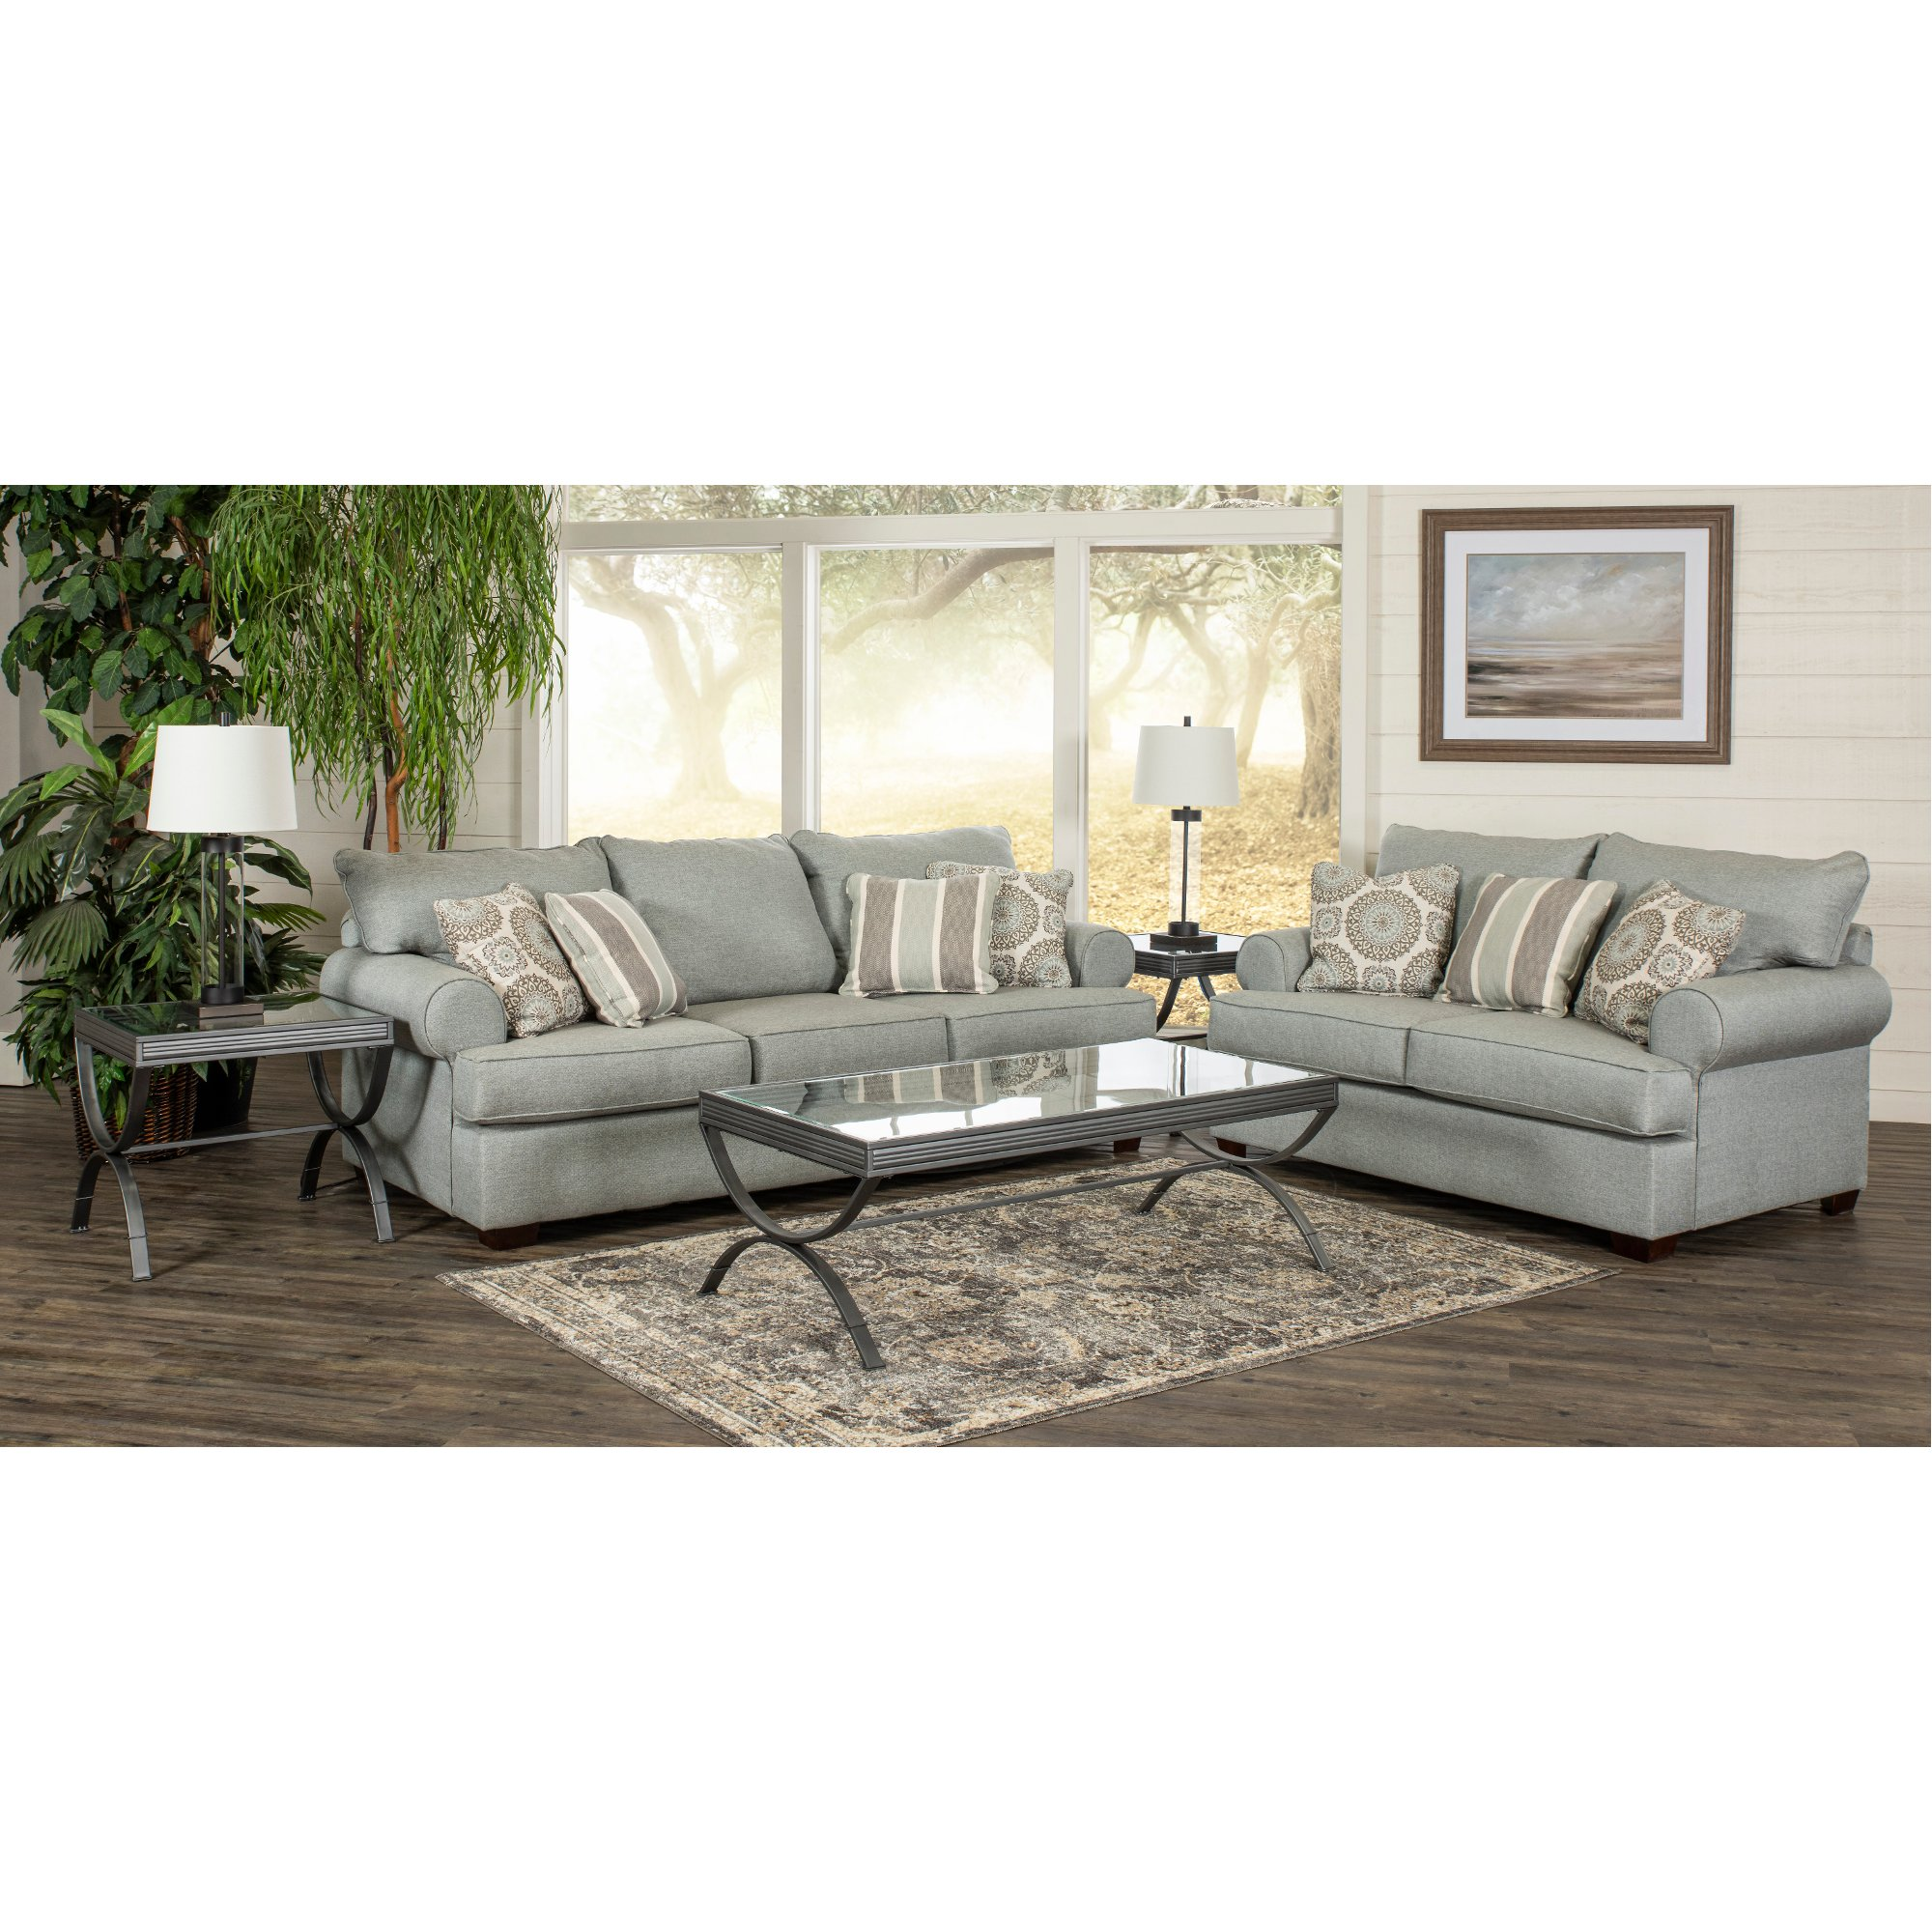 Casual Classic Mist Green 7 Piece Living Room Set - Alison | RC ...